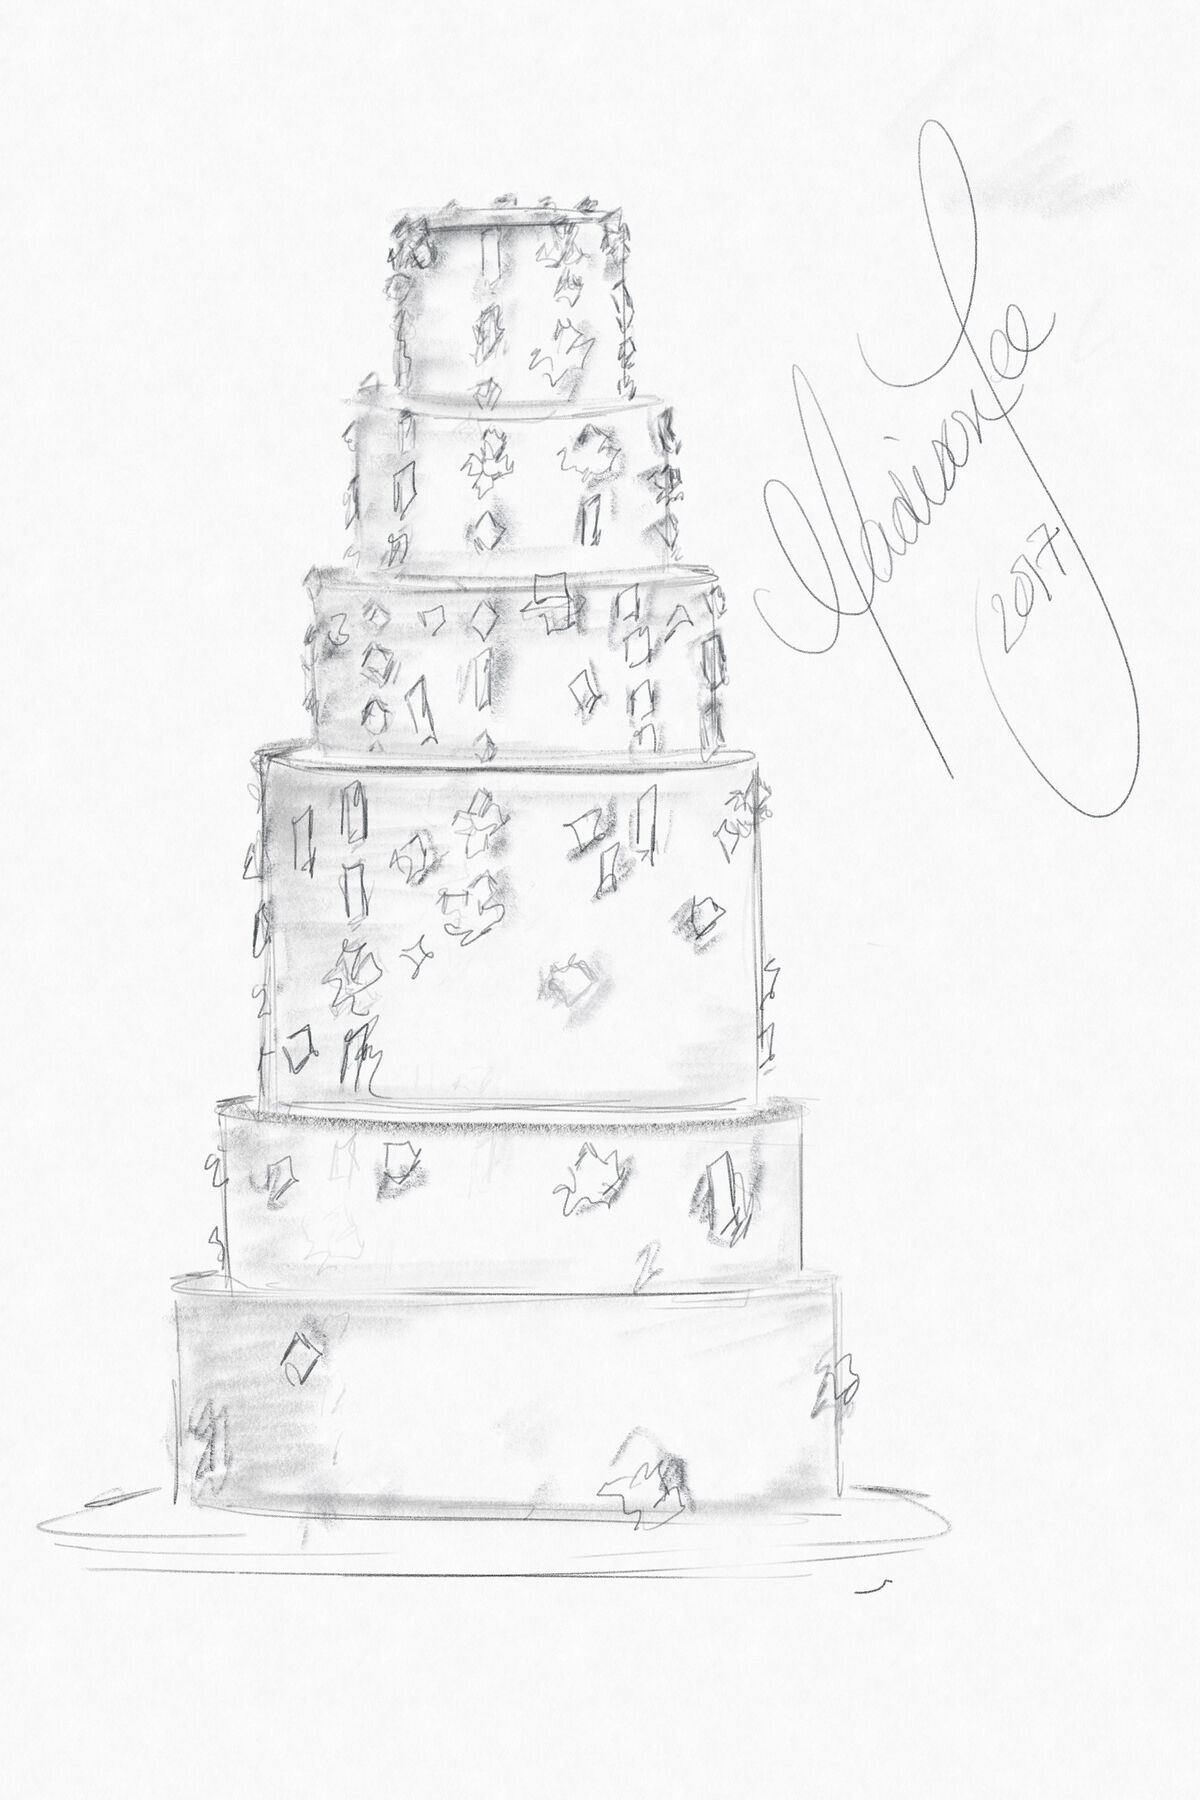 Wedding cake sketch by Madison Lee. Courtesy of Madison Lee's Cakes.